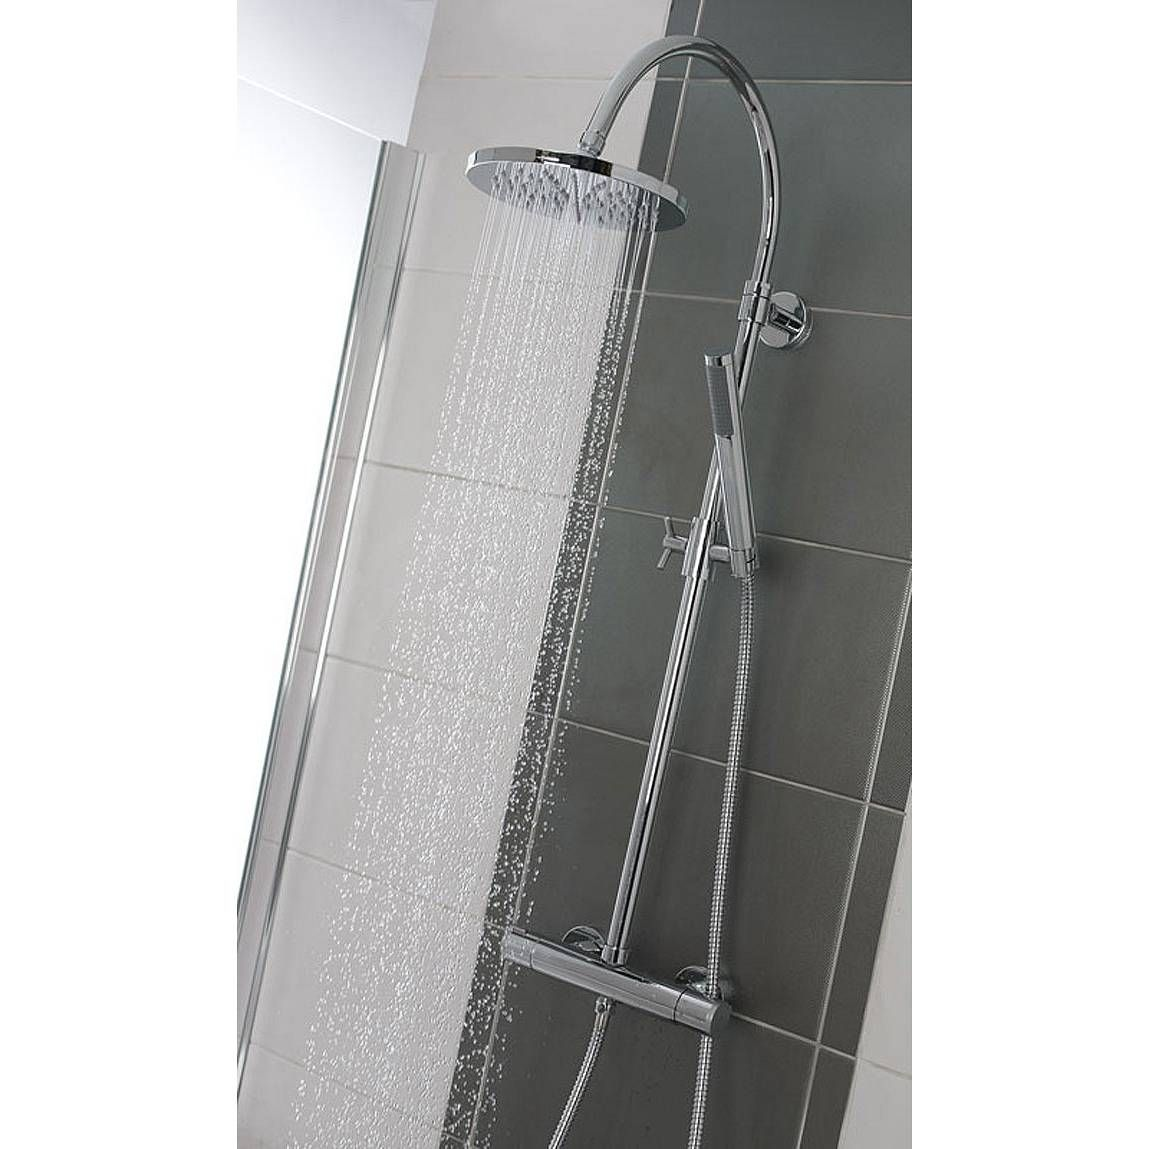 Bathroom Accessories Victoria Plumb iaria round head shower riser system half price in victoria plumb